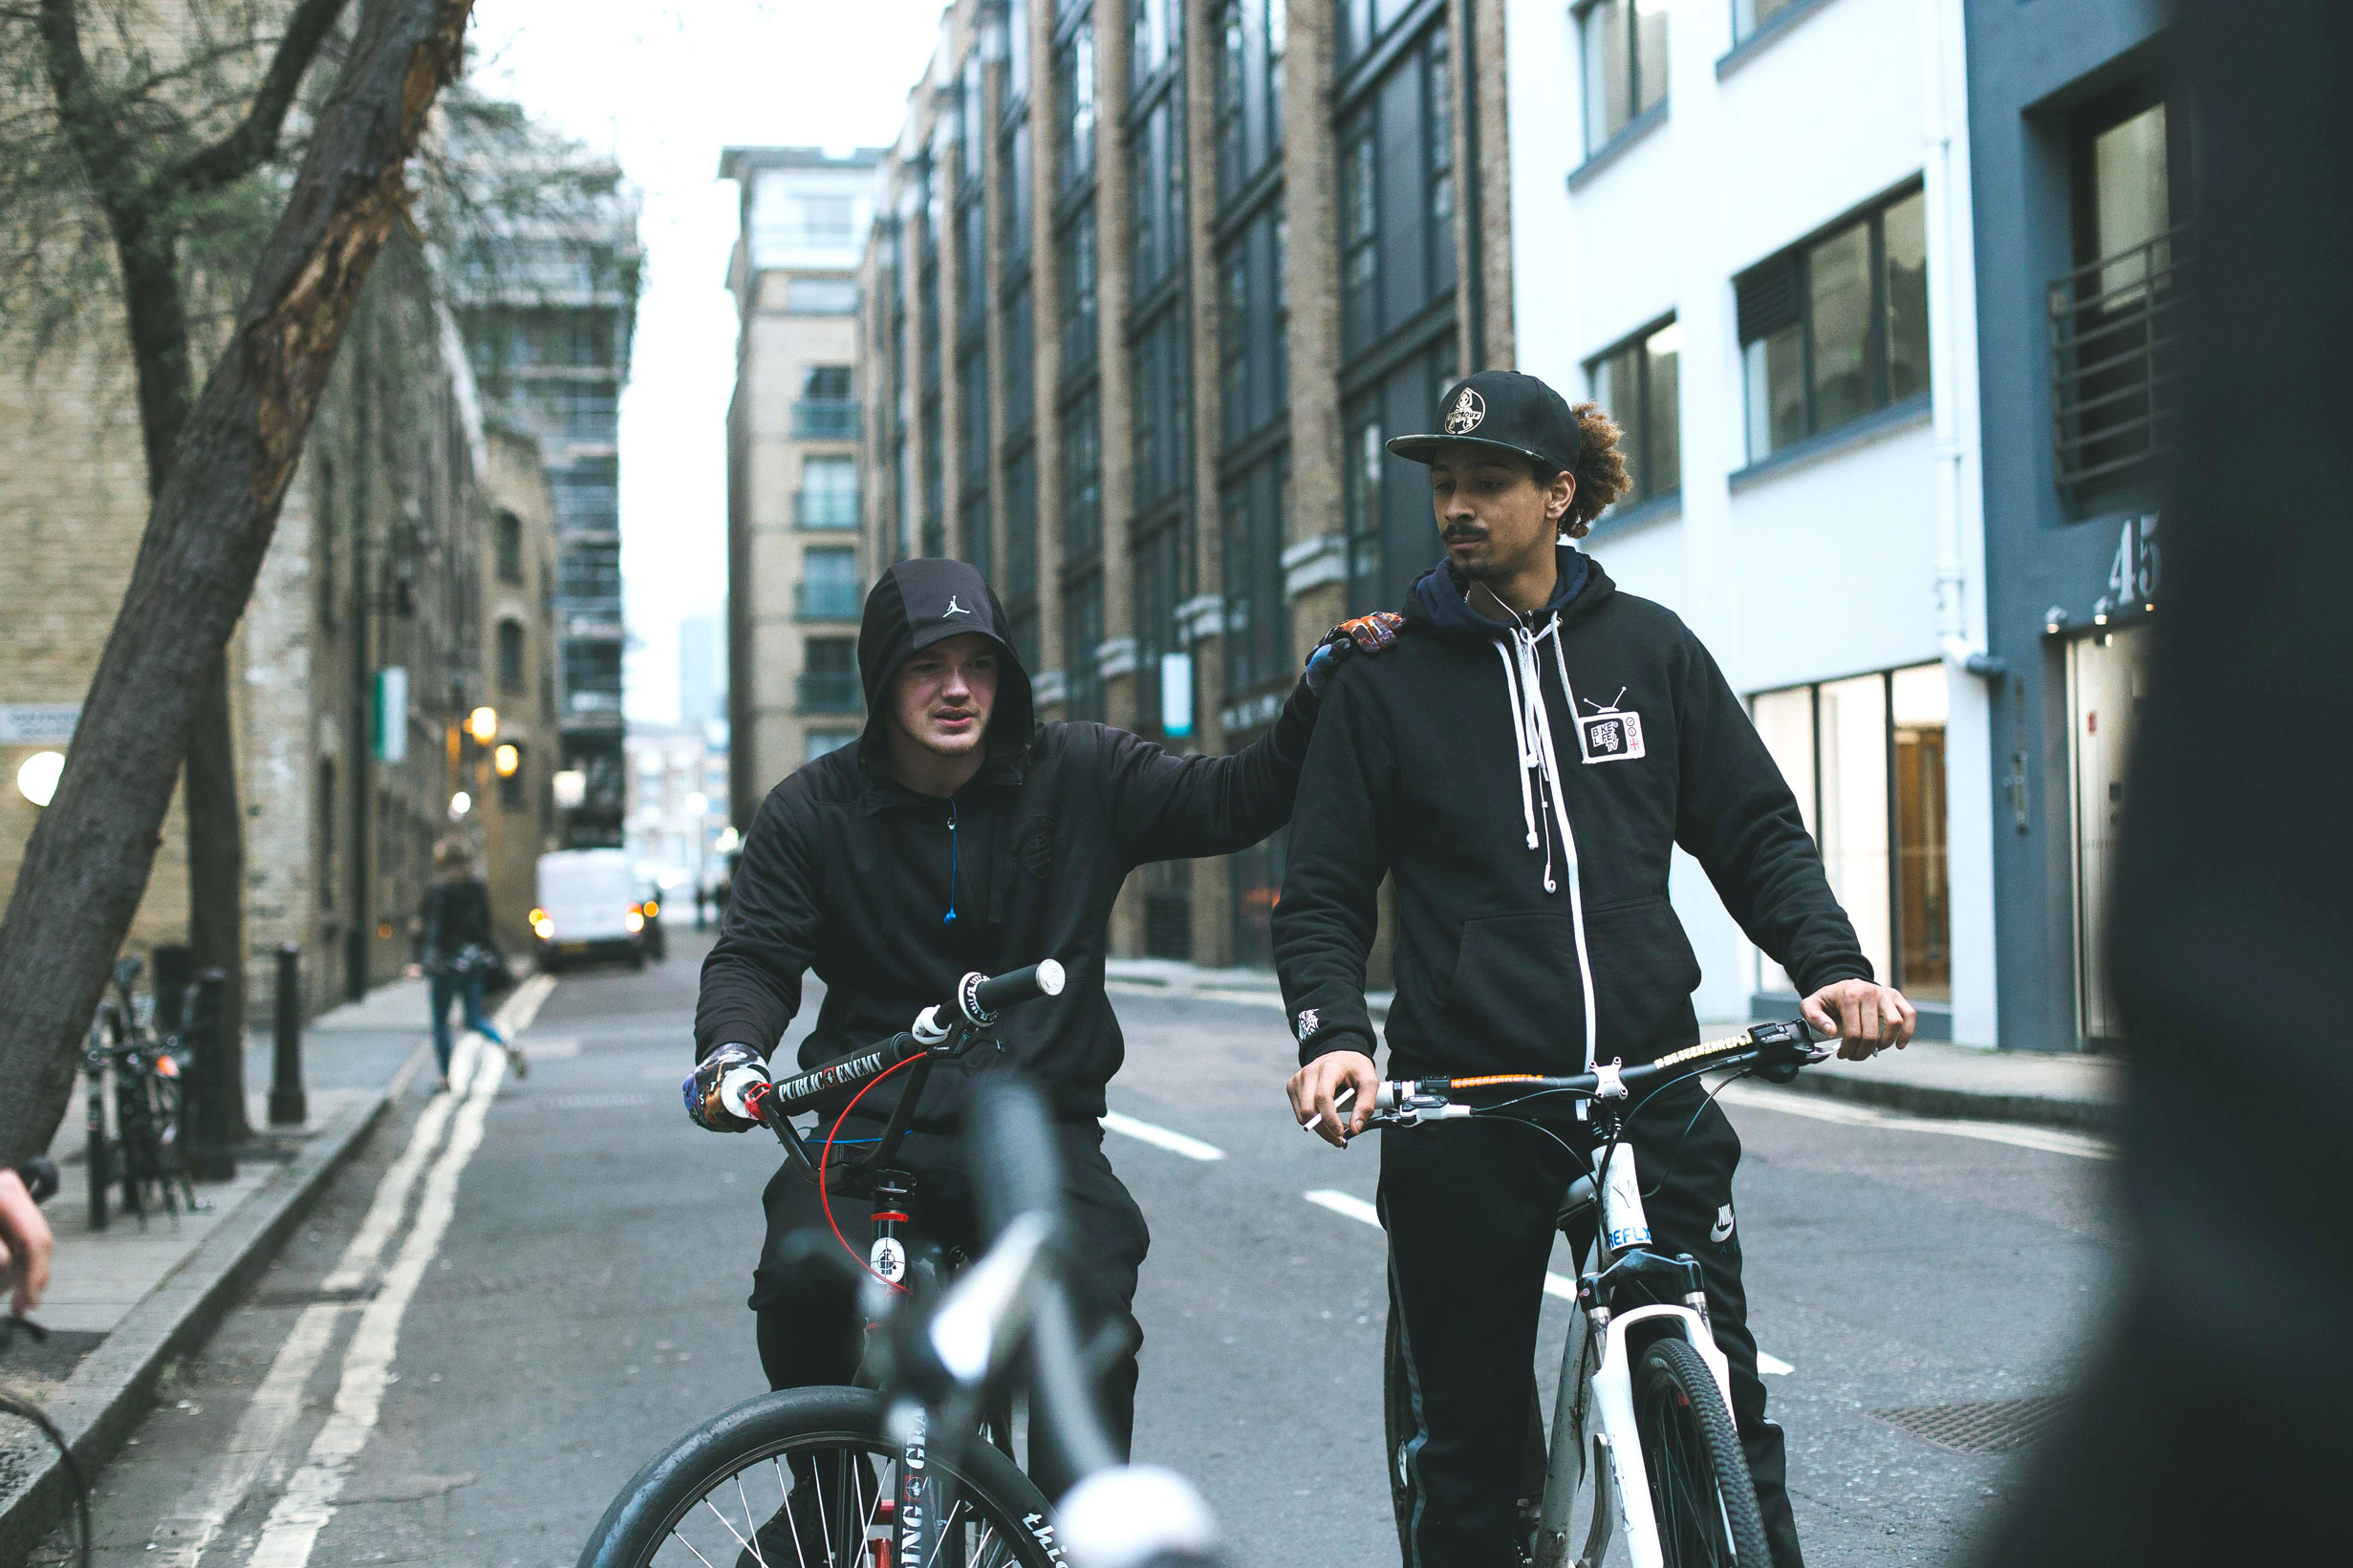 Jake and Kizzy, two of London Bikelife's biggest characters, catch their breath after practising tricks on a side street in Bermondsey.